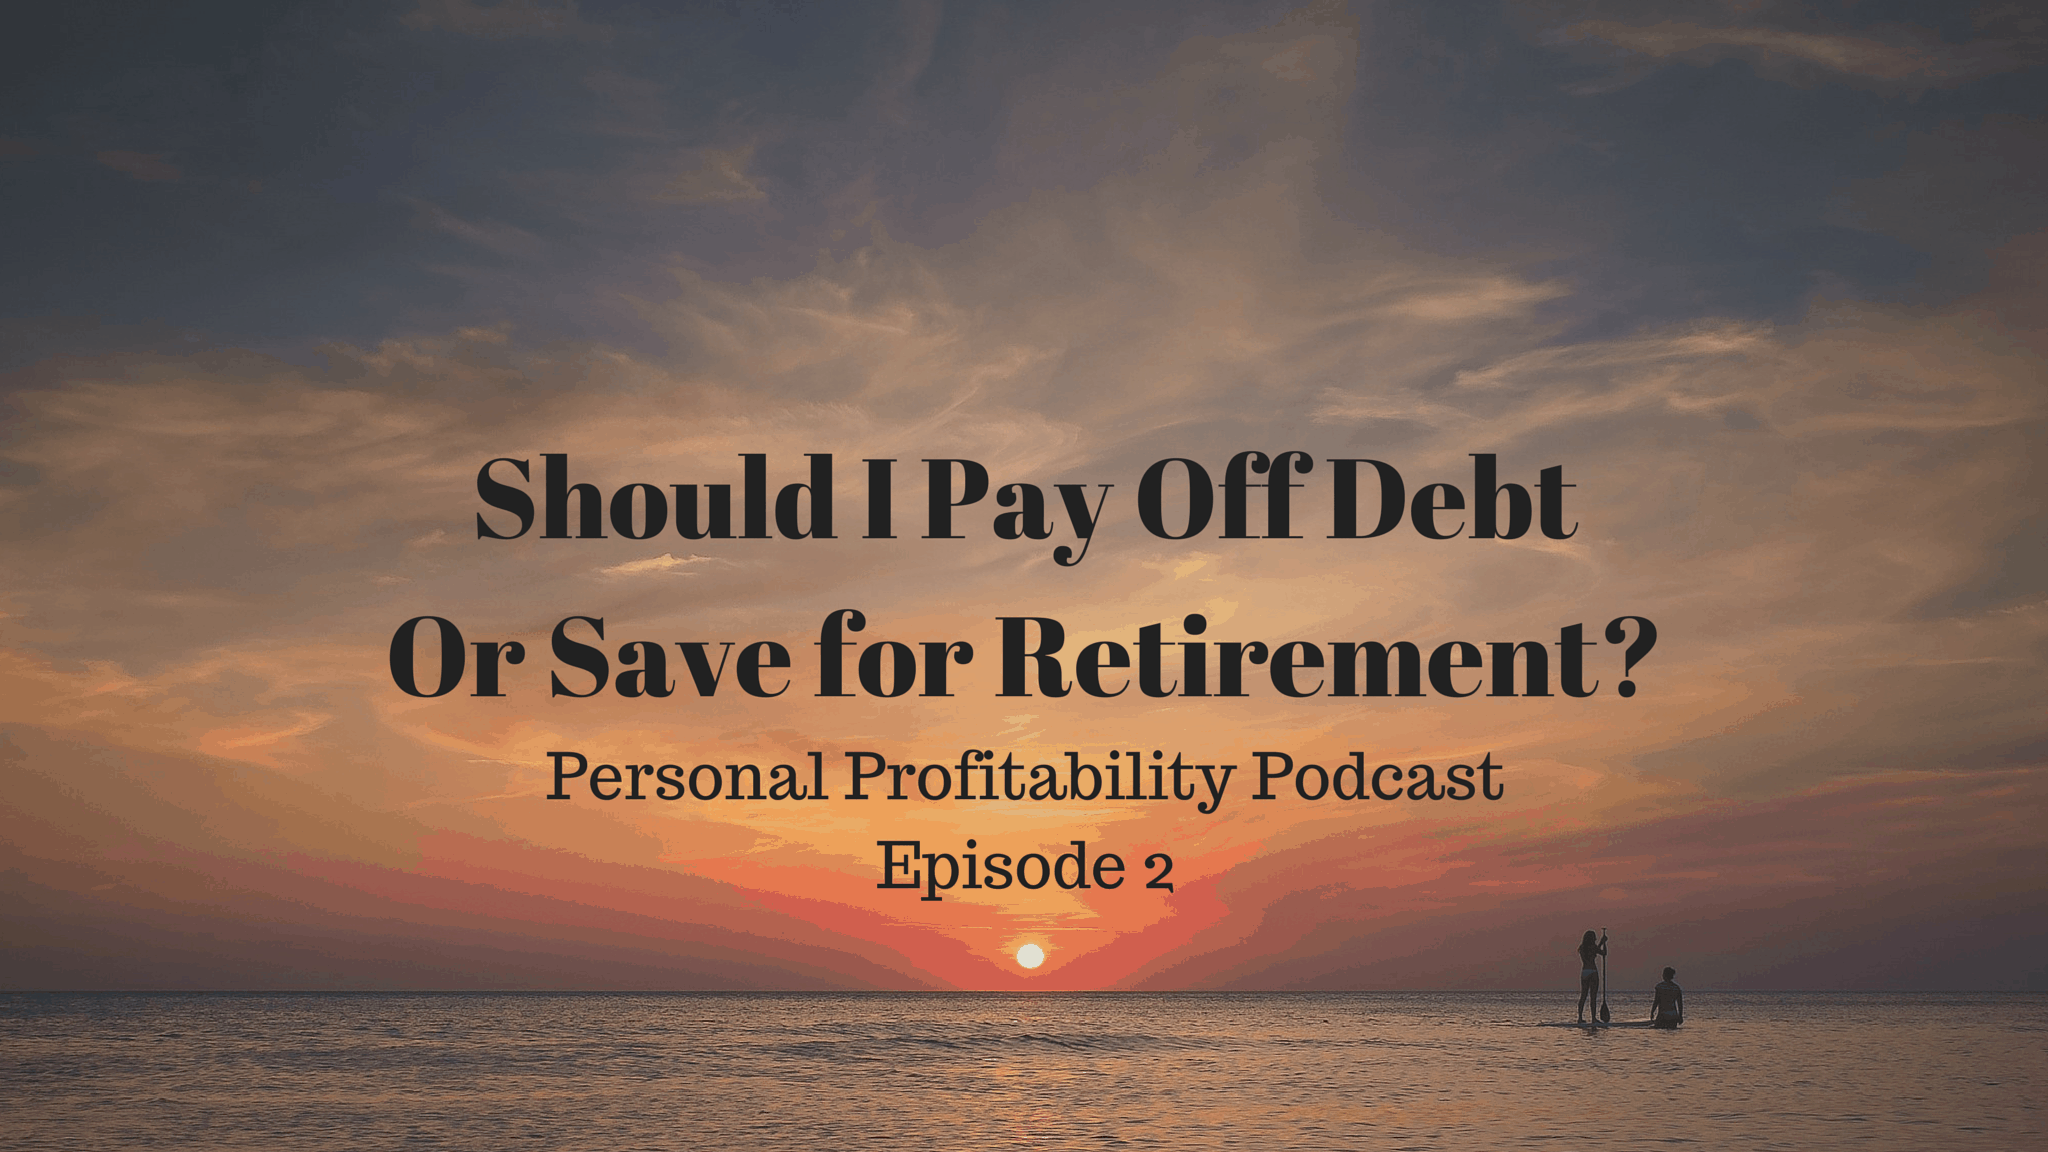 Should I Pay Off Debt Or Save for Retirement